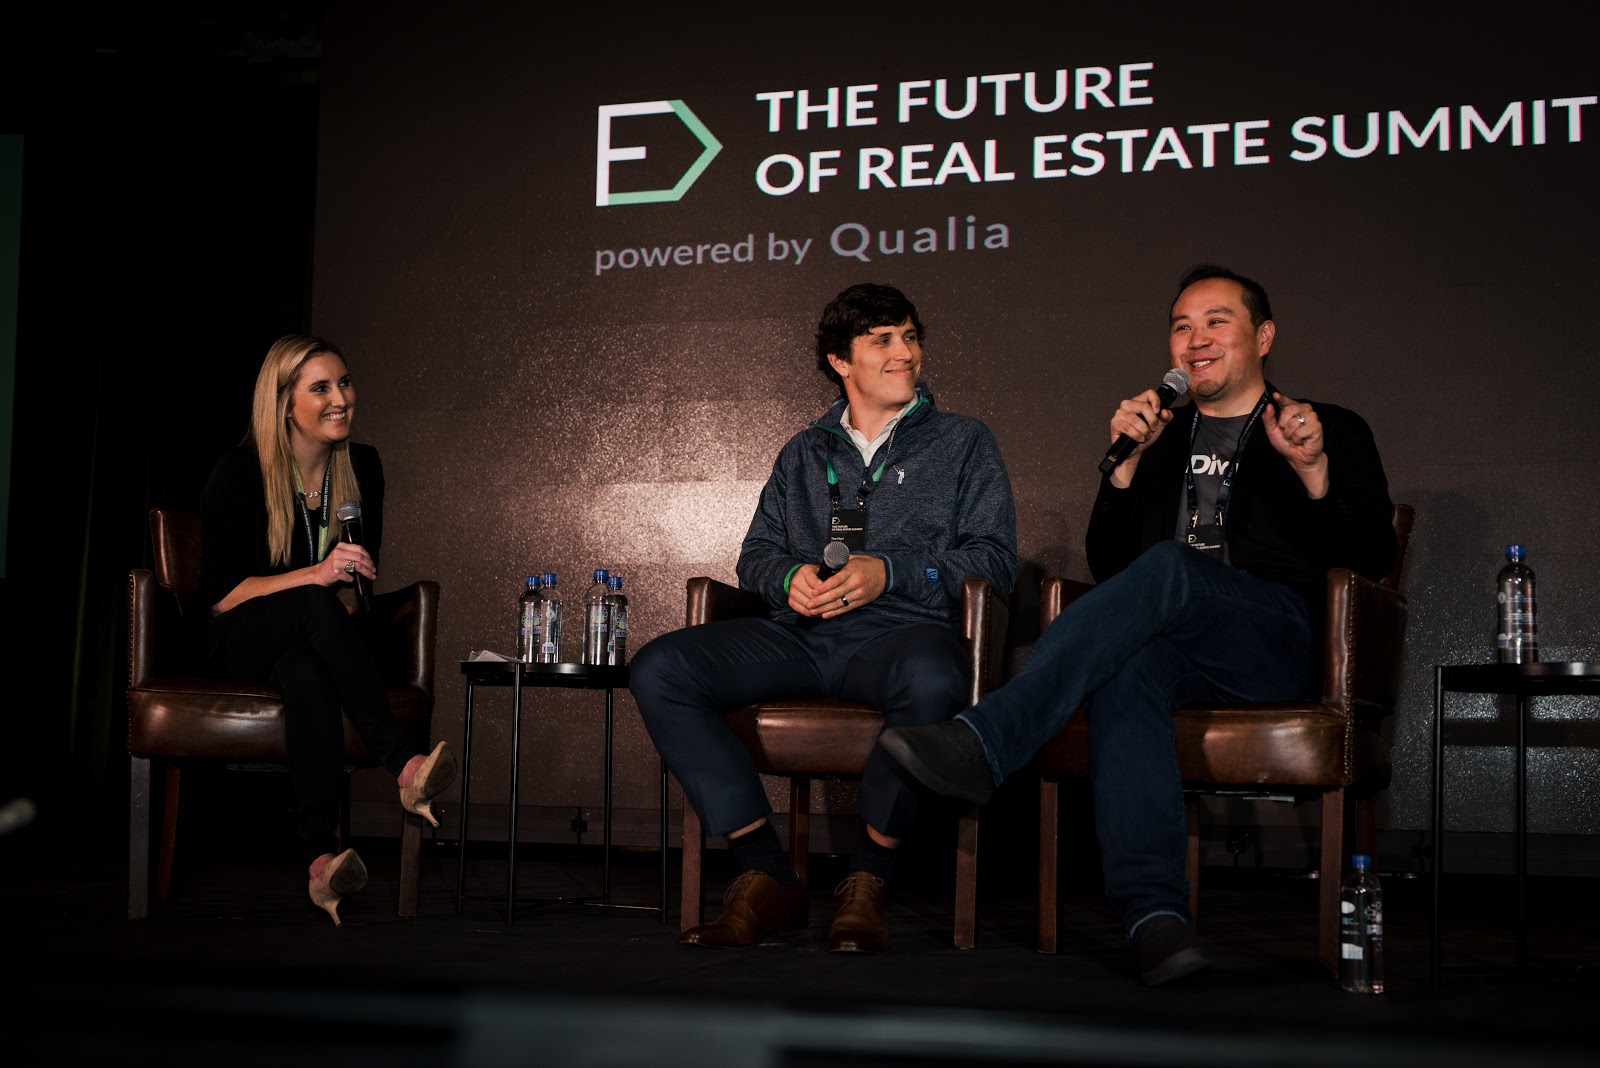 Jamie Kump of Qualia, Tim Heyl of Homeward, and Brian Ma of Divvy discuss the future of home ownership at the Future of Real Estate Summit